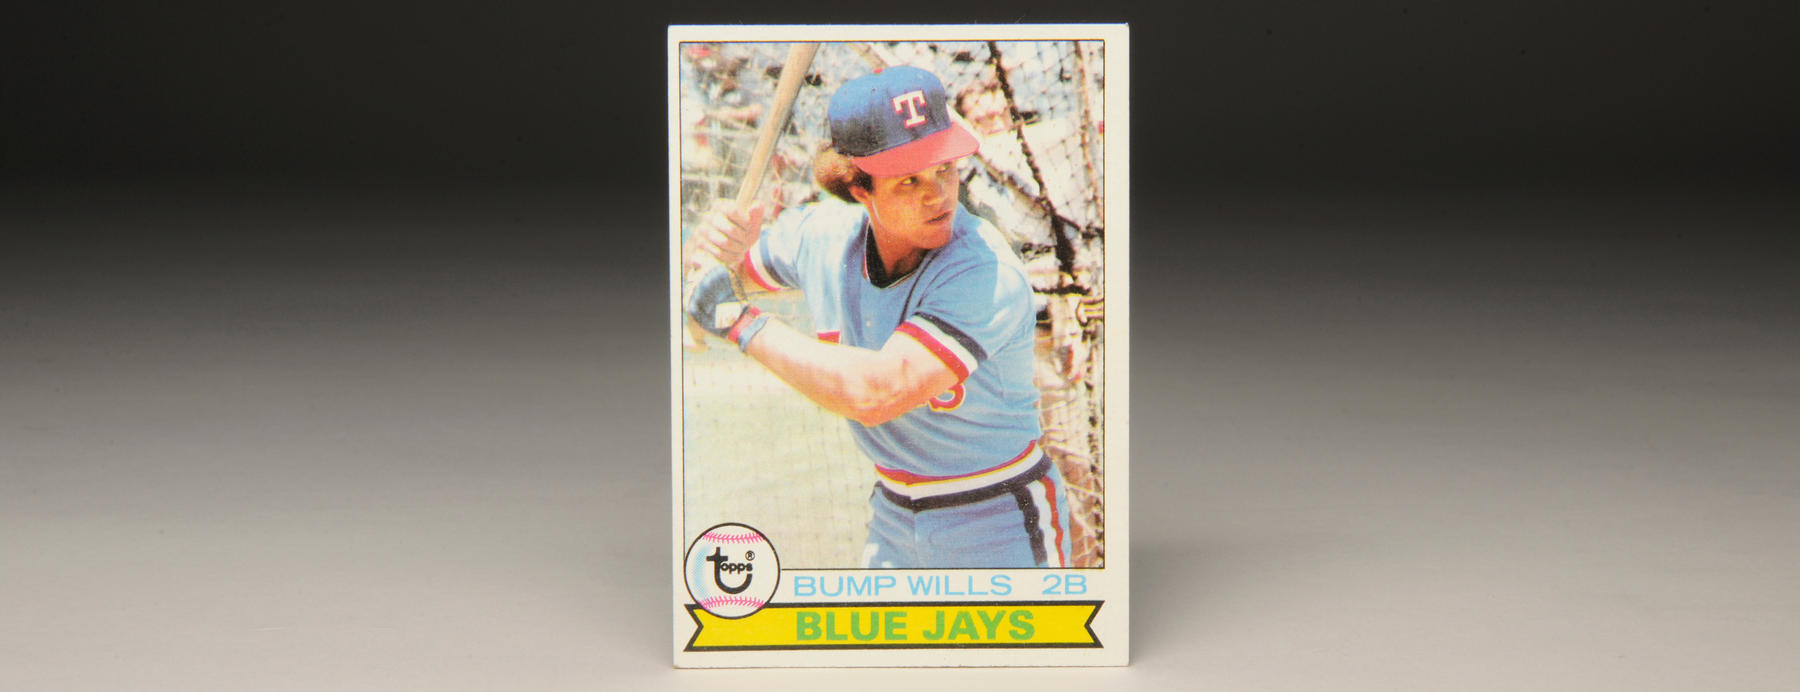 This 1979 Topps card featured Bump Wills in a Texas Rangers uniform with a Blue Jays description, a team he never played for. (Milo Stewart, Jr. / National Baseball Hall of Fame)